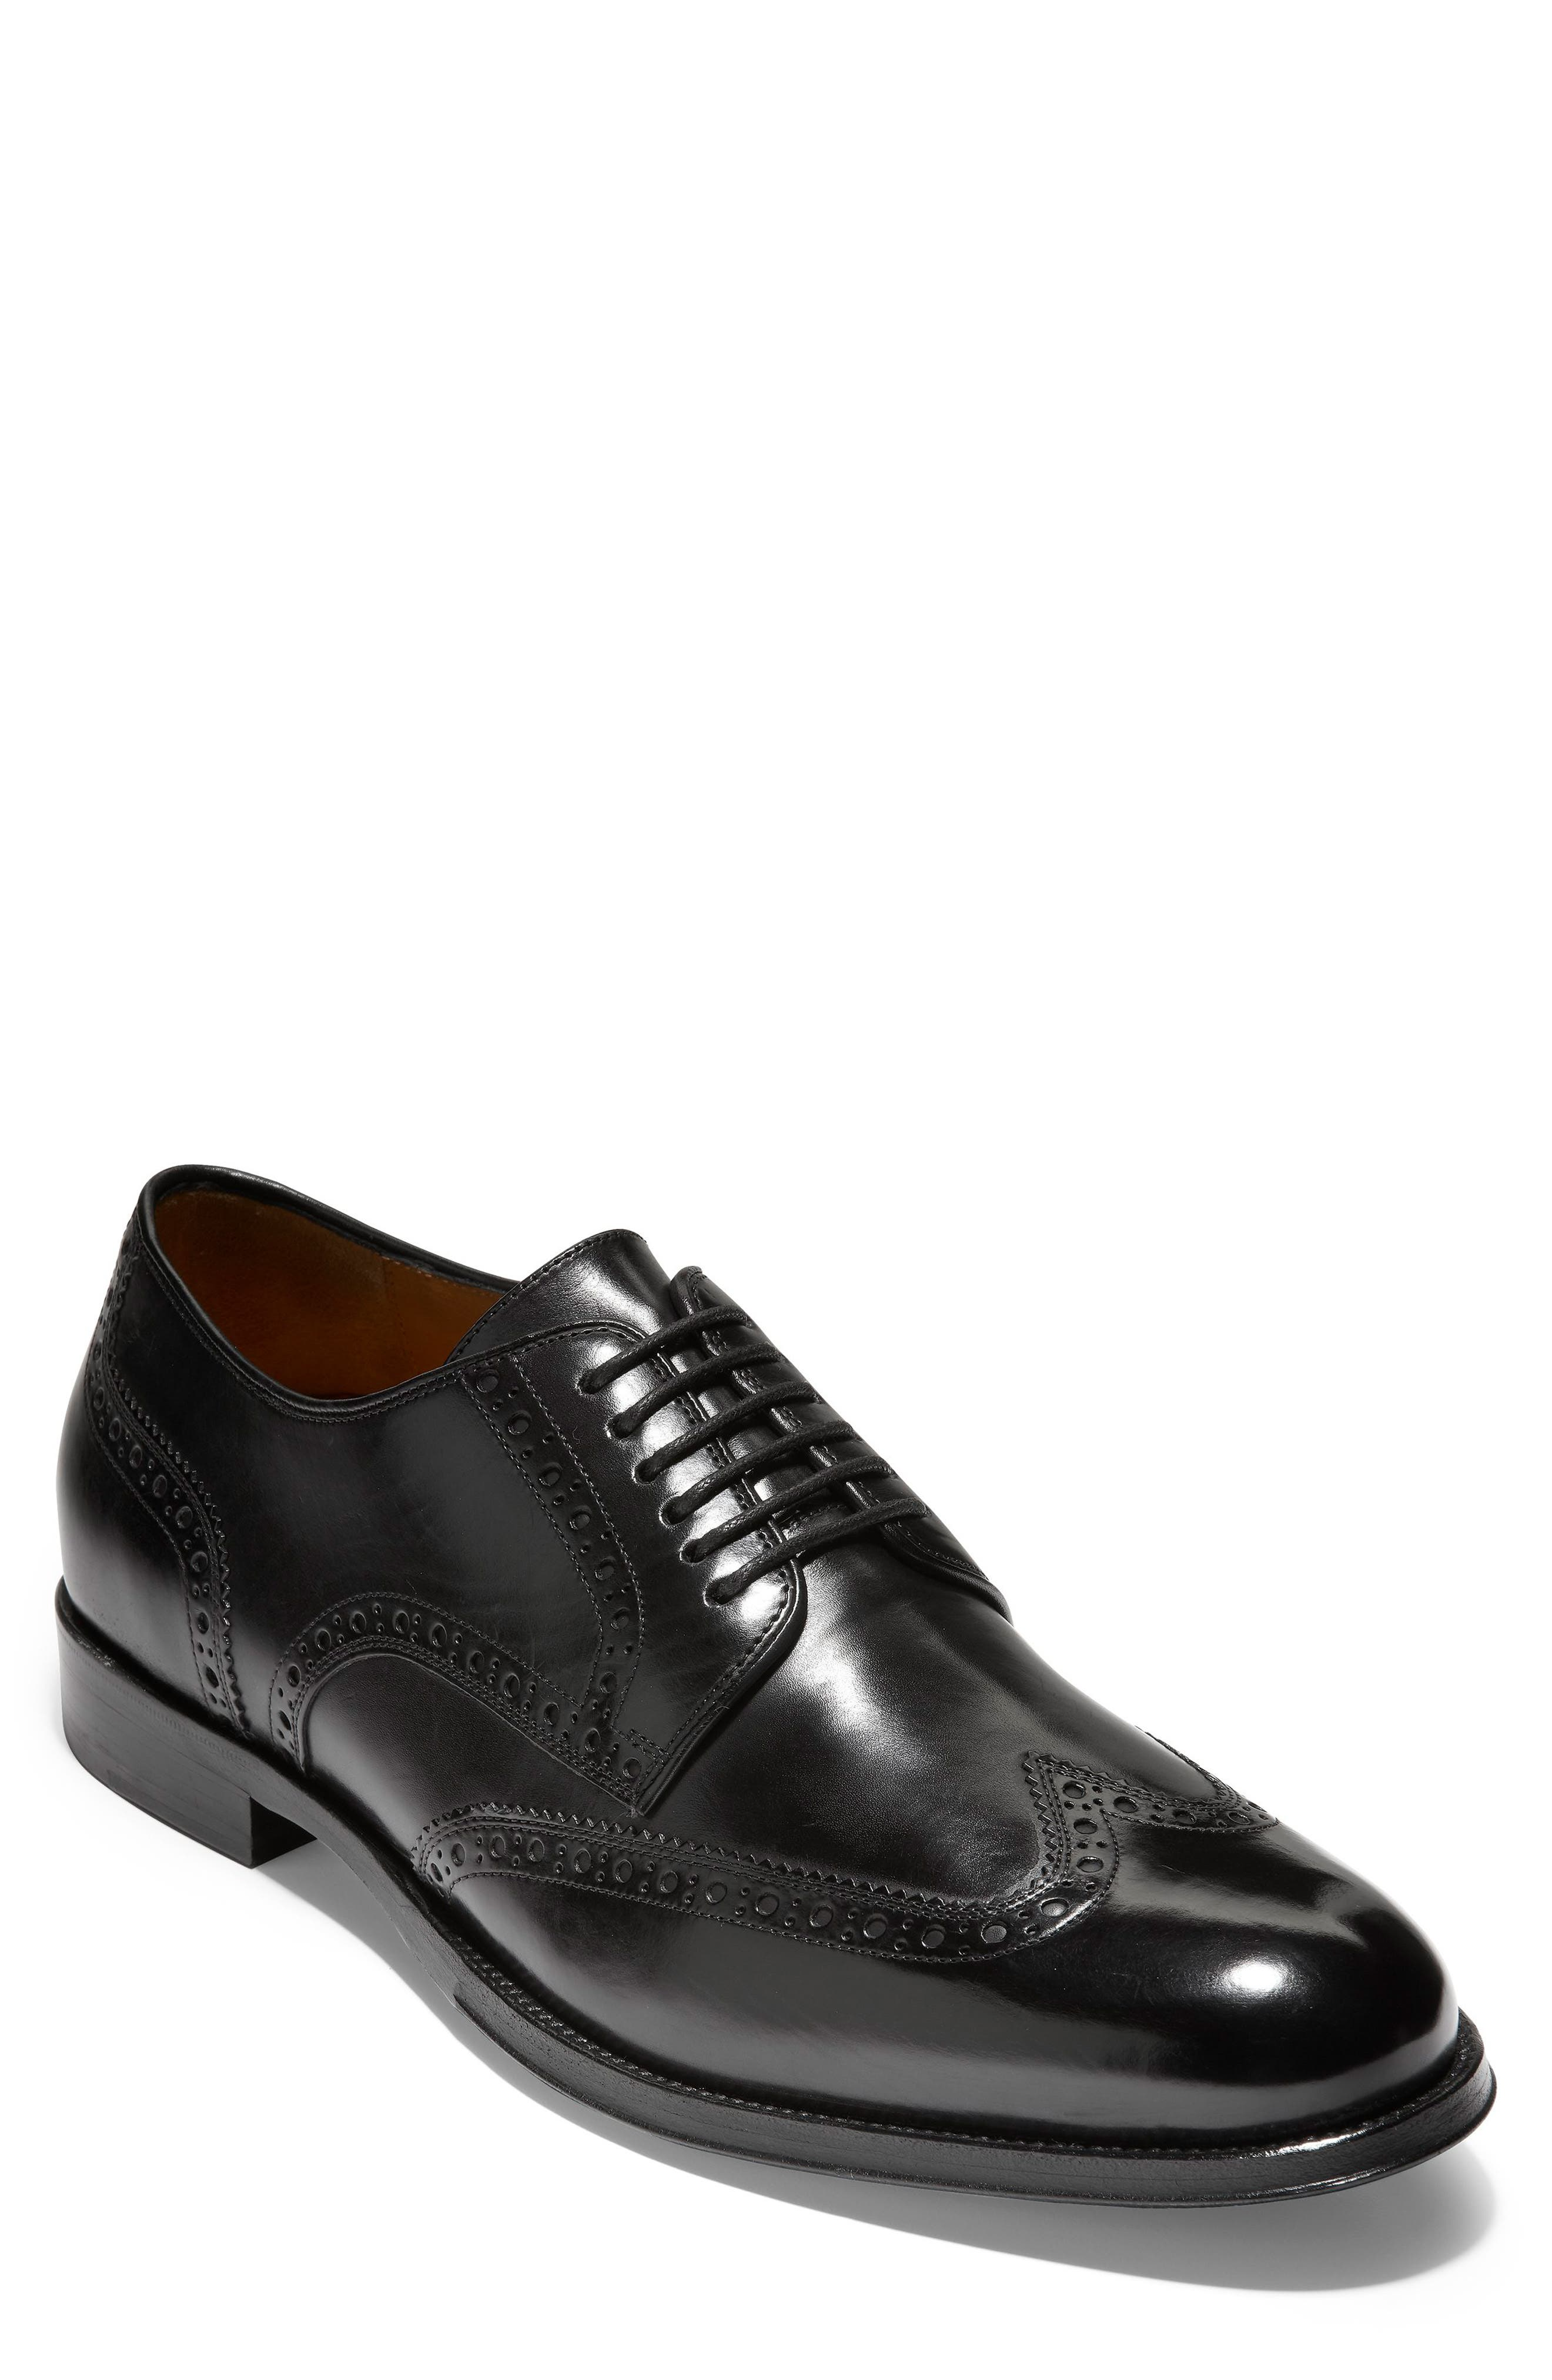 American Classics Grammercy Wingtip,                         Main,                         color, BLACK LEATHER